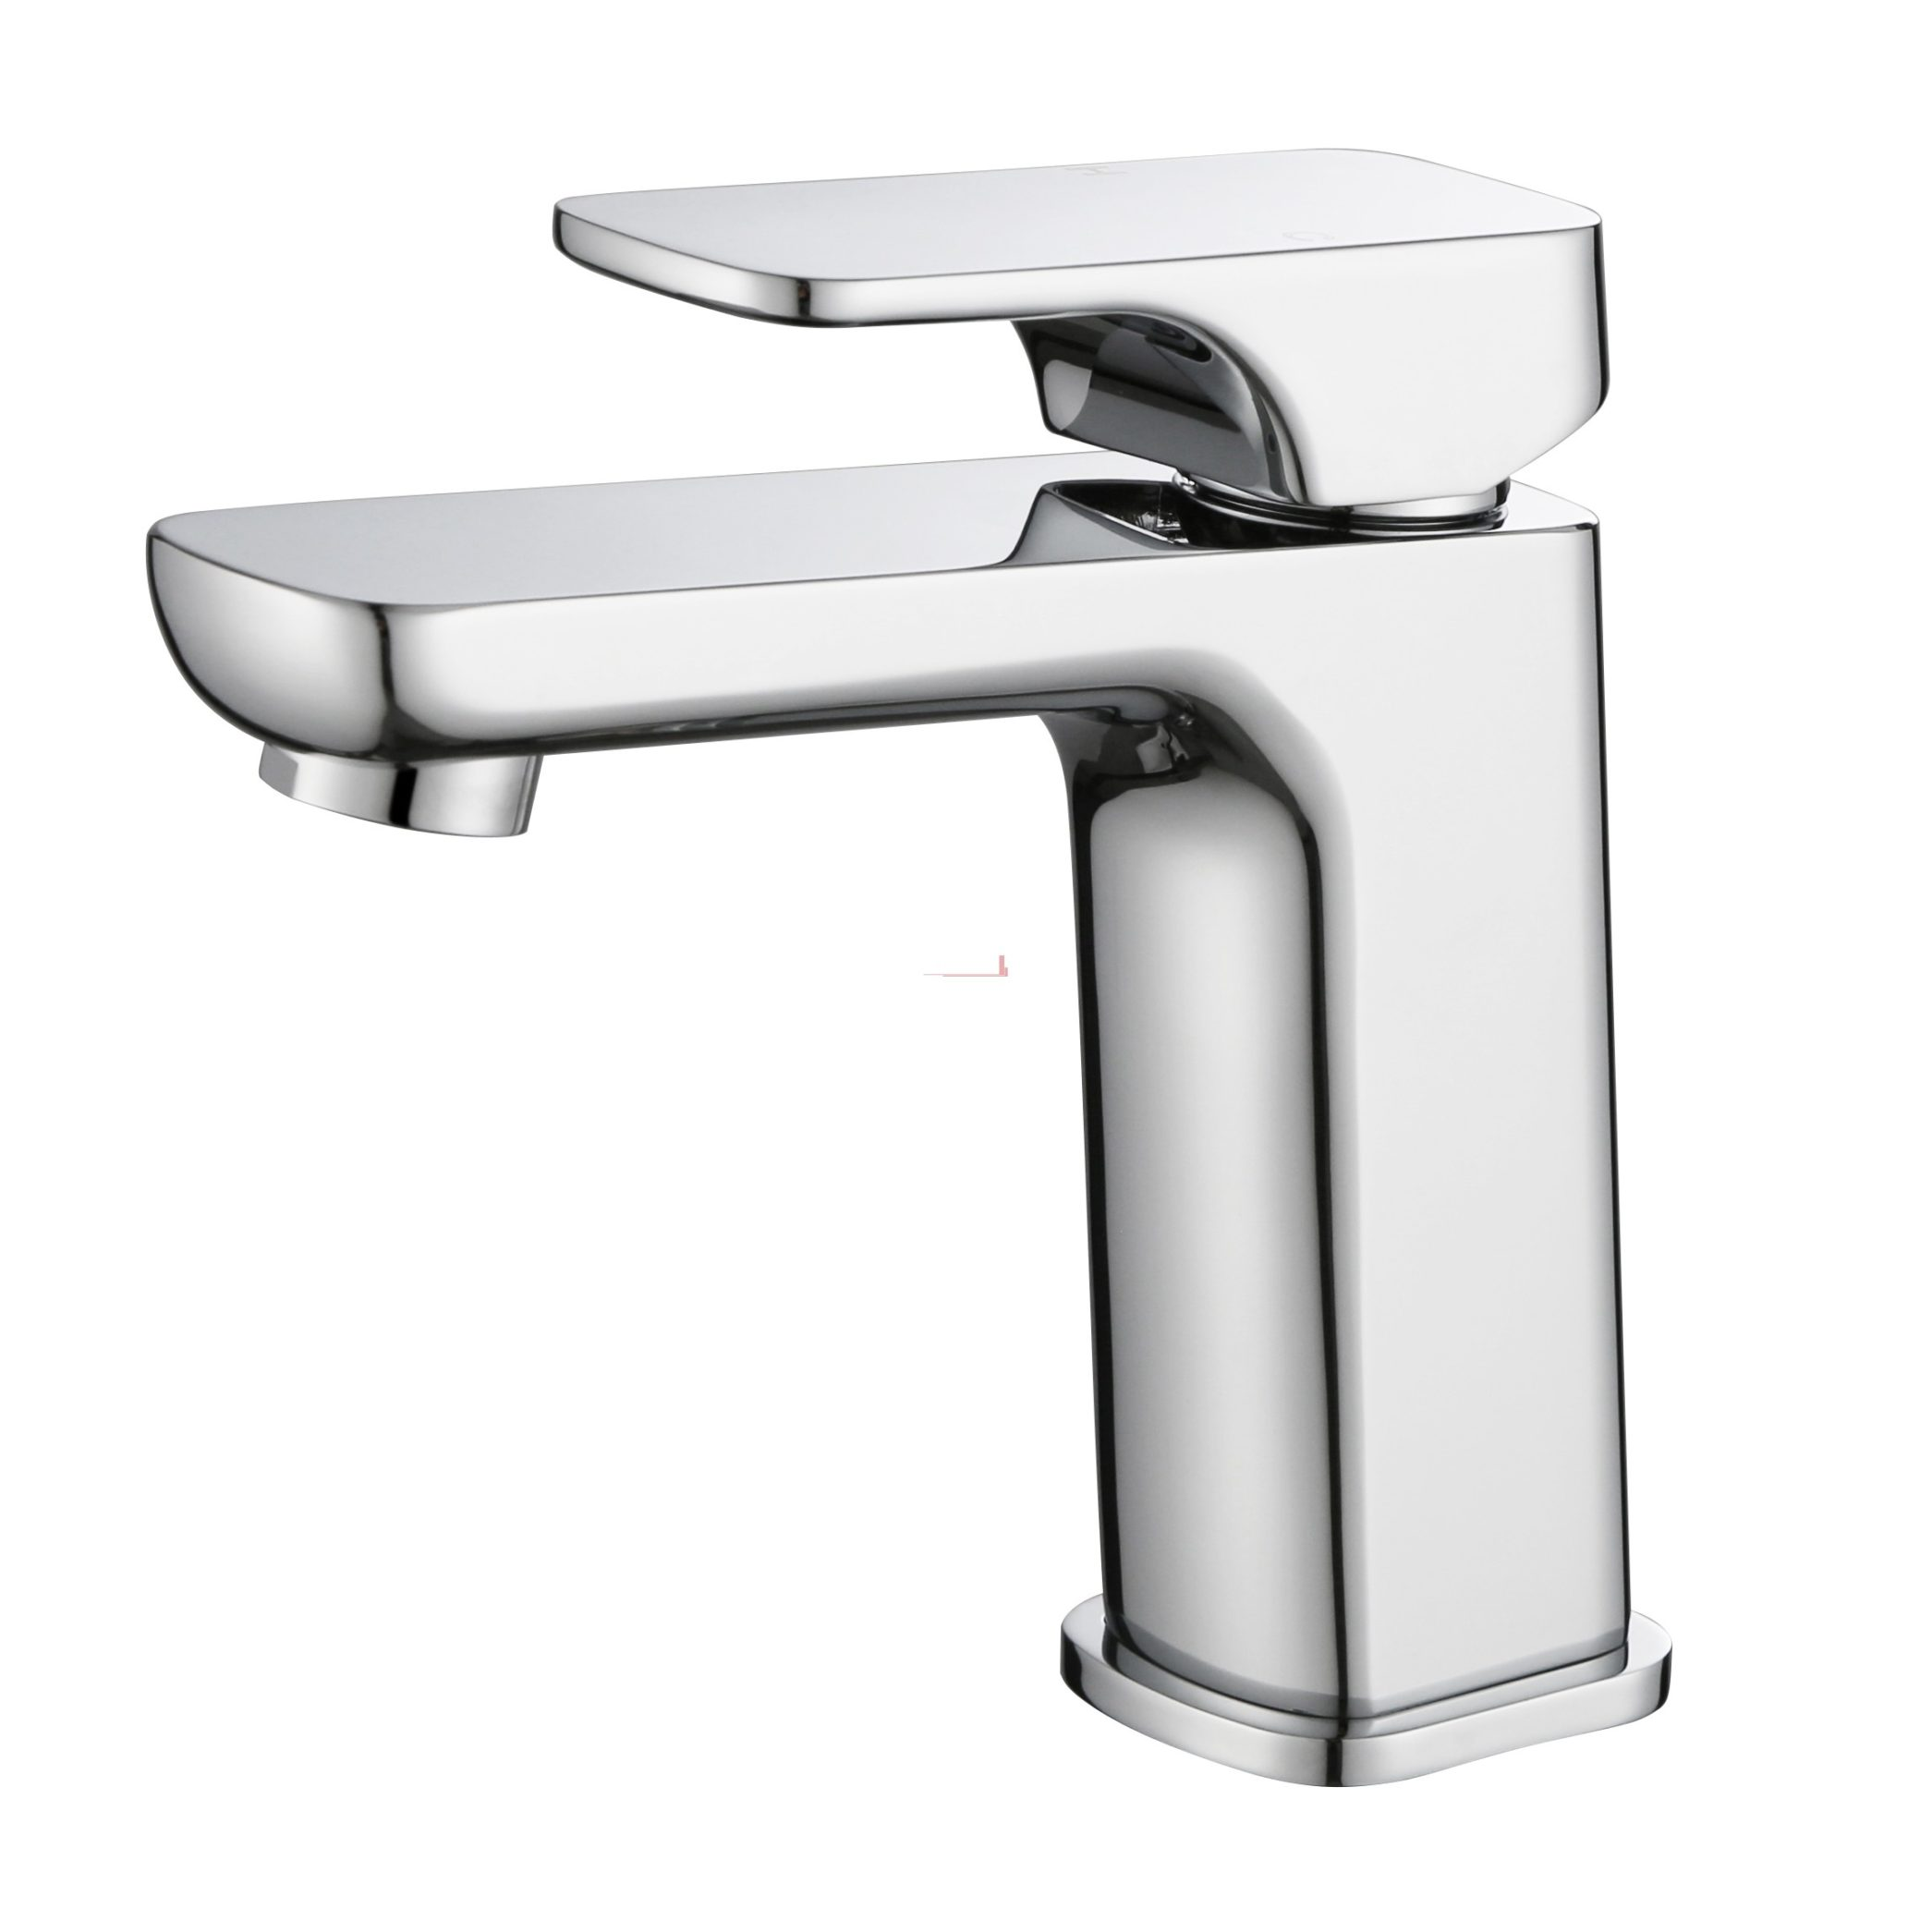 Chaser Basin Mixer - Plumbing Clearance Centre - Narre Warren